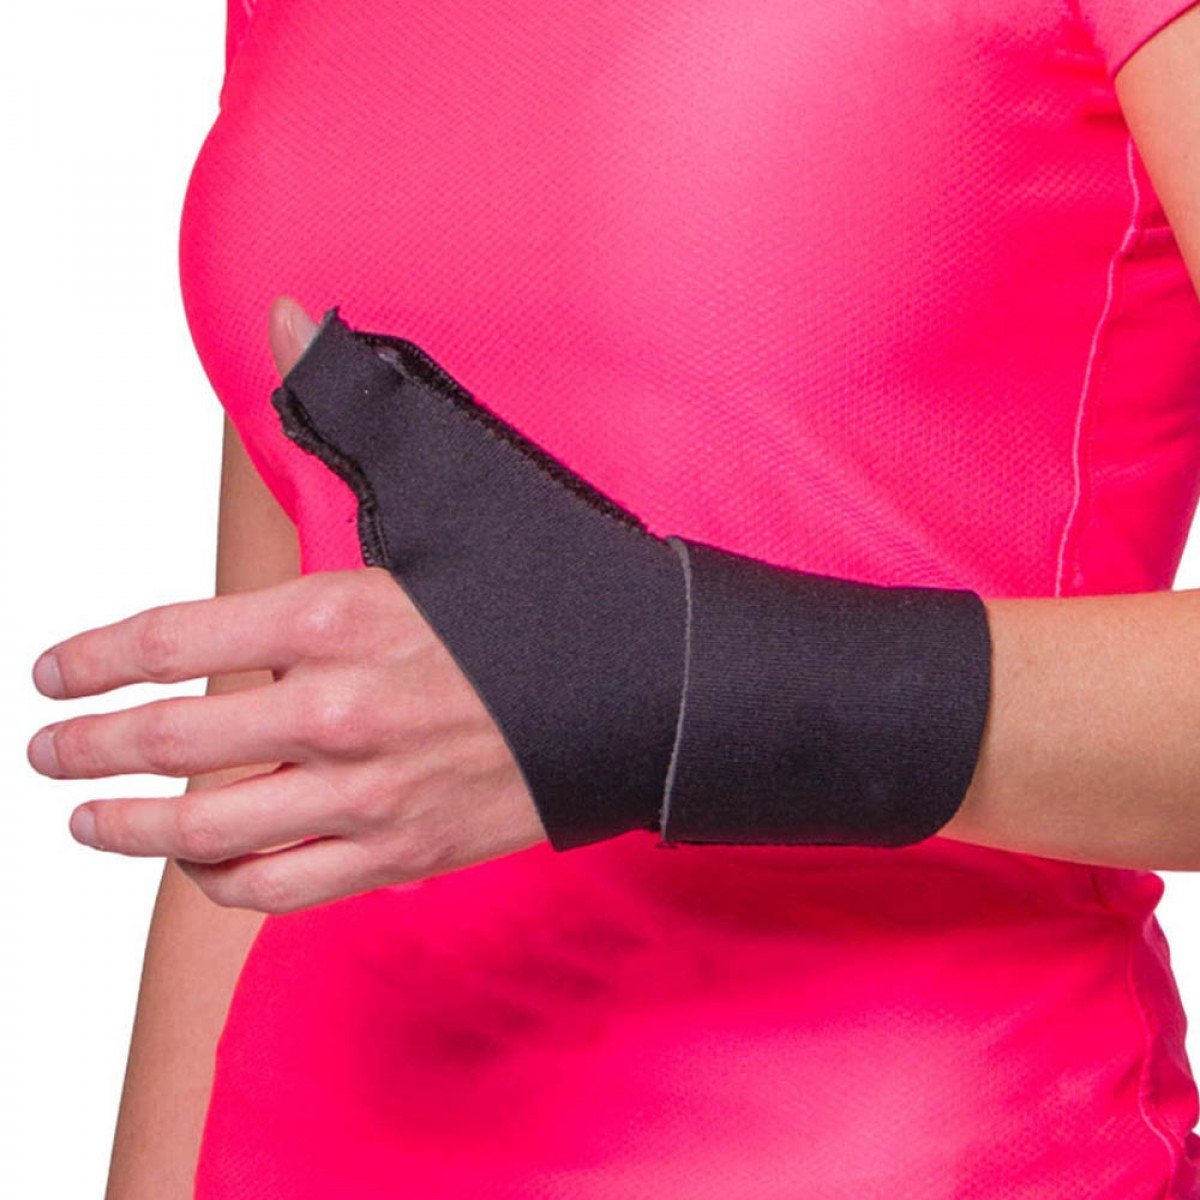 Soft Thumb Stabilizer for Sprains & Injuries